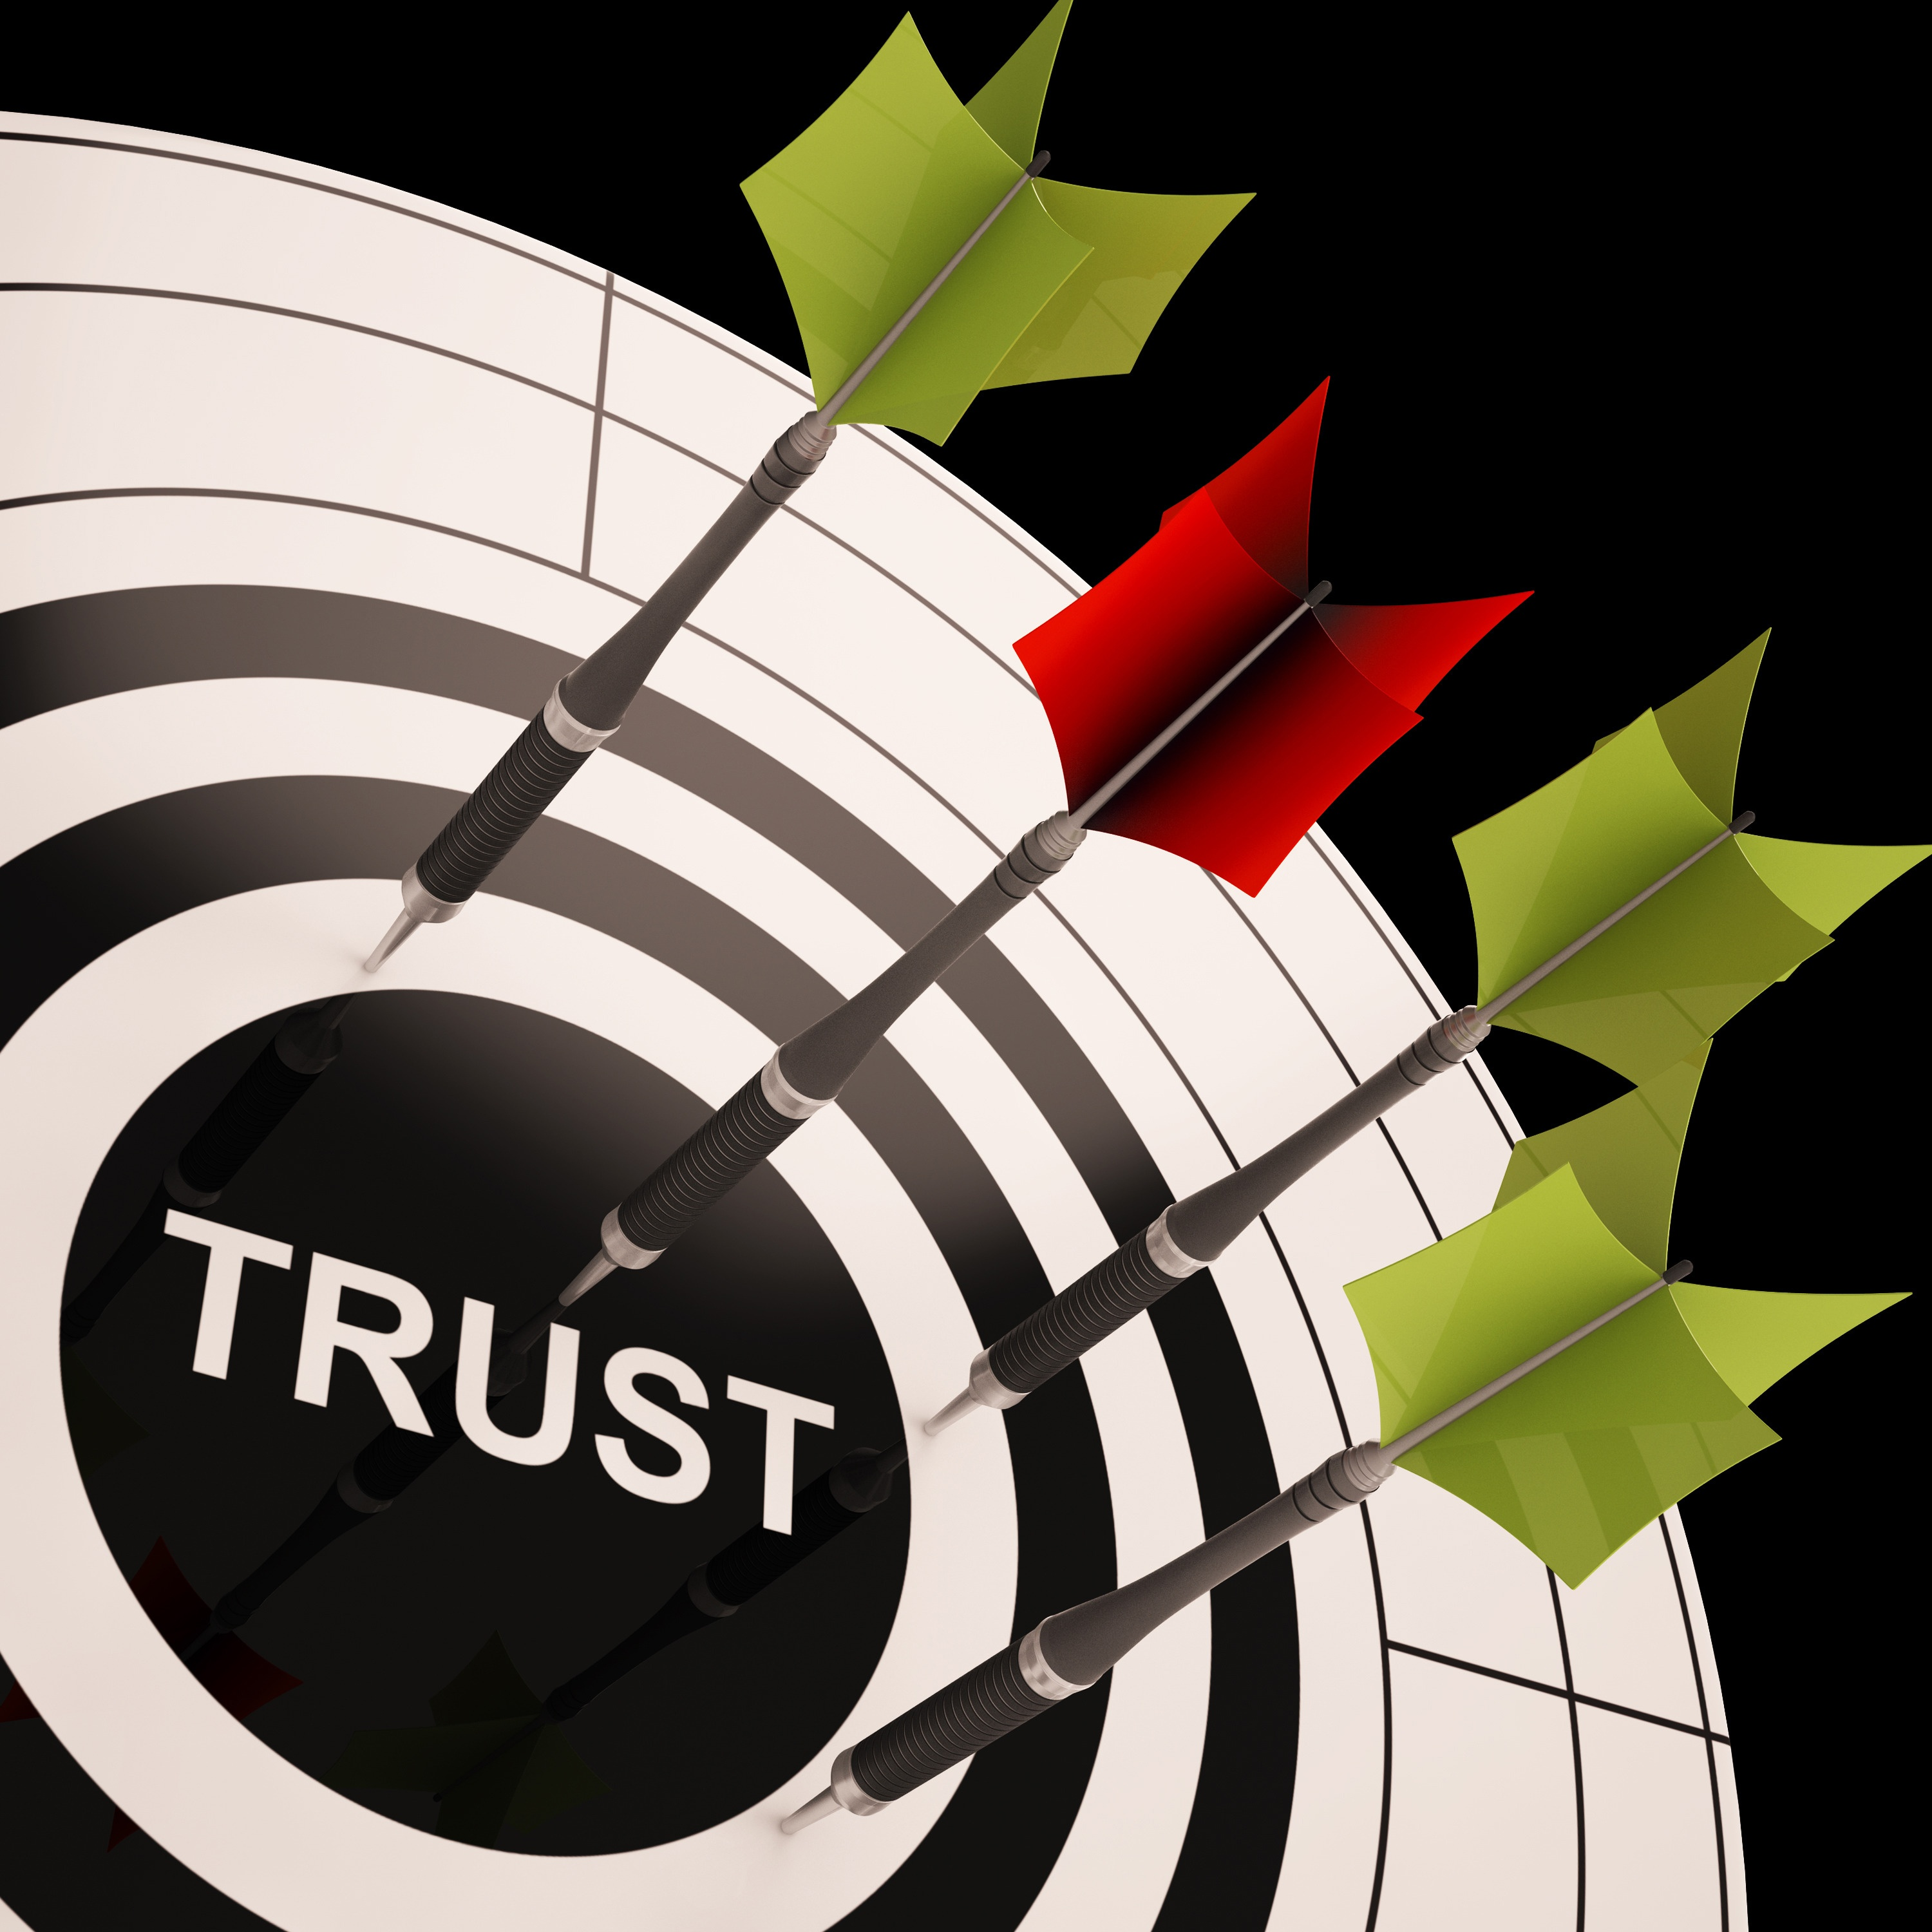 Without Trust Nothing Happens